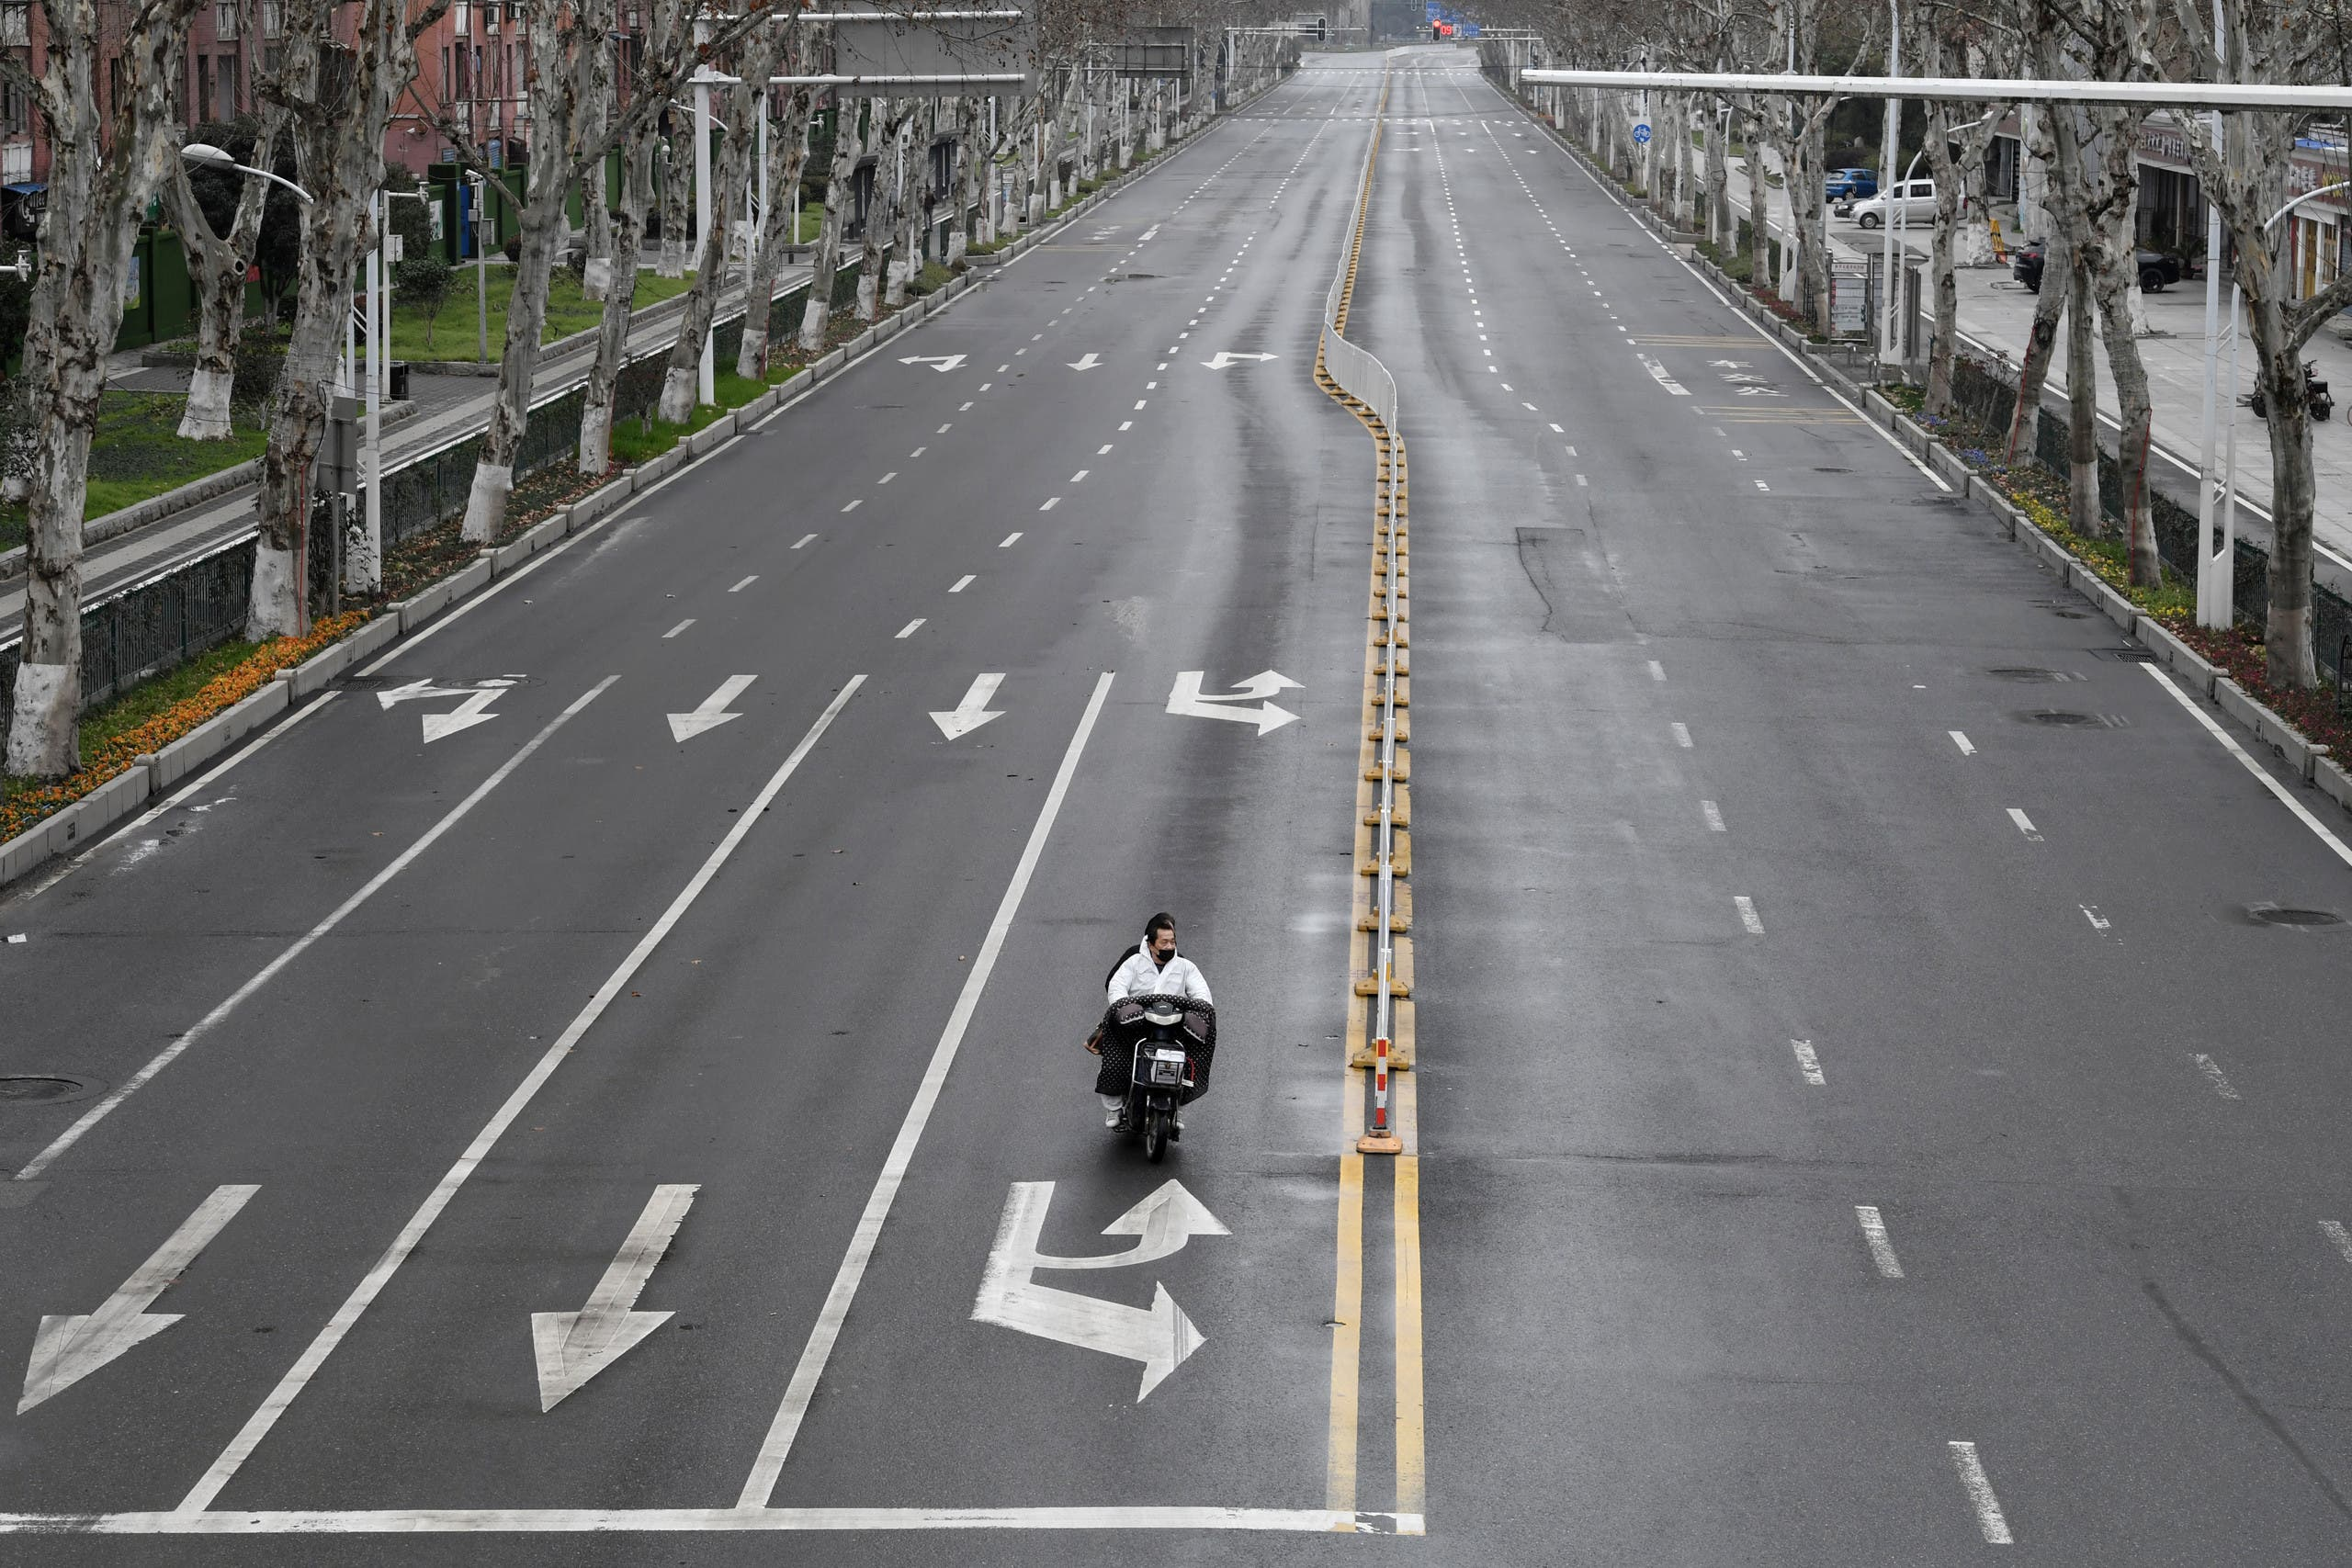 People ride an electric bike on a road in Wuhan, the epicentre of the novel coronavirus outbreak, Hubei province, China. (File photo: Reuters)